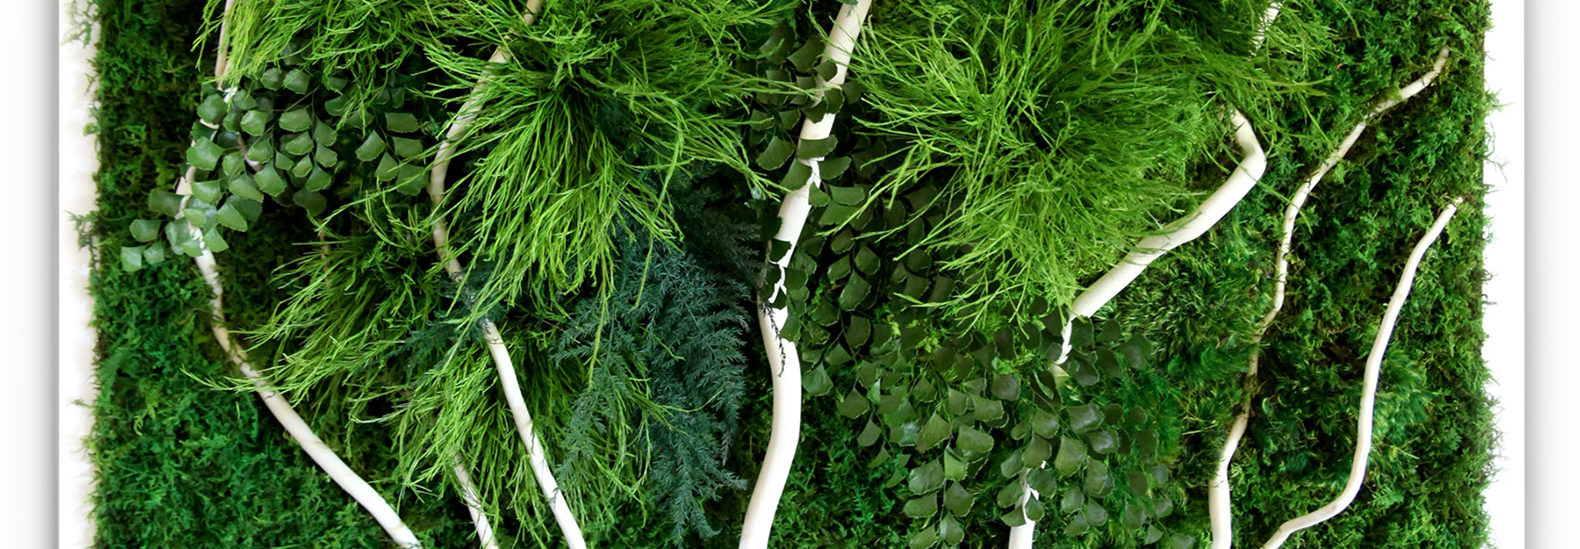 Artisan Moss Plant Paintings Are Maintenance Free Alternatives To Living Walls